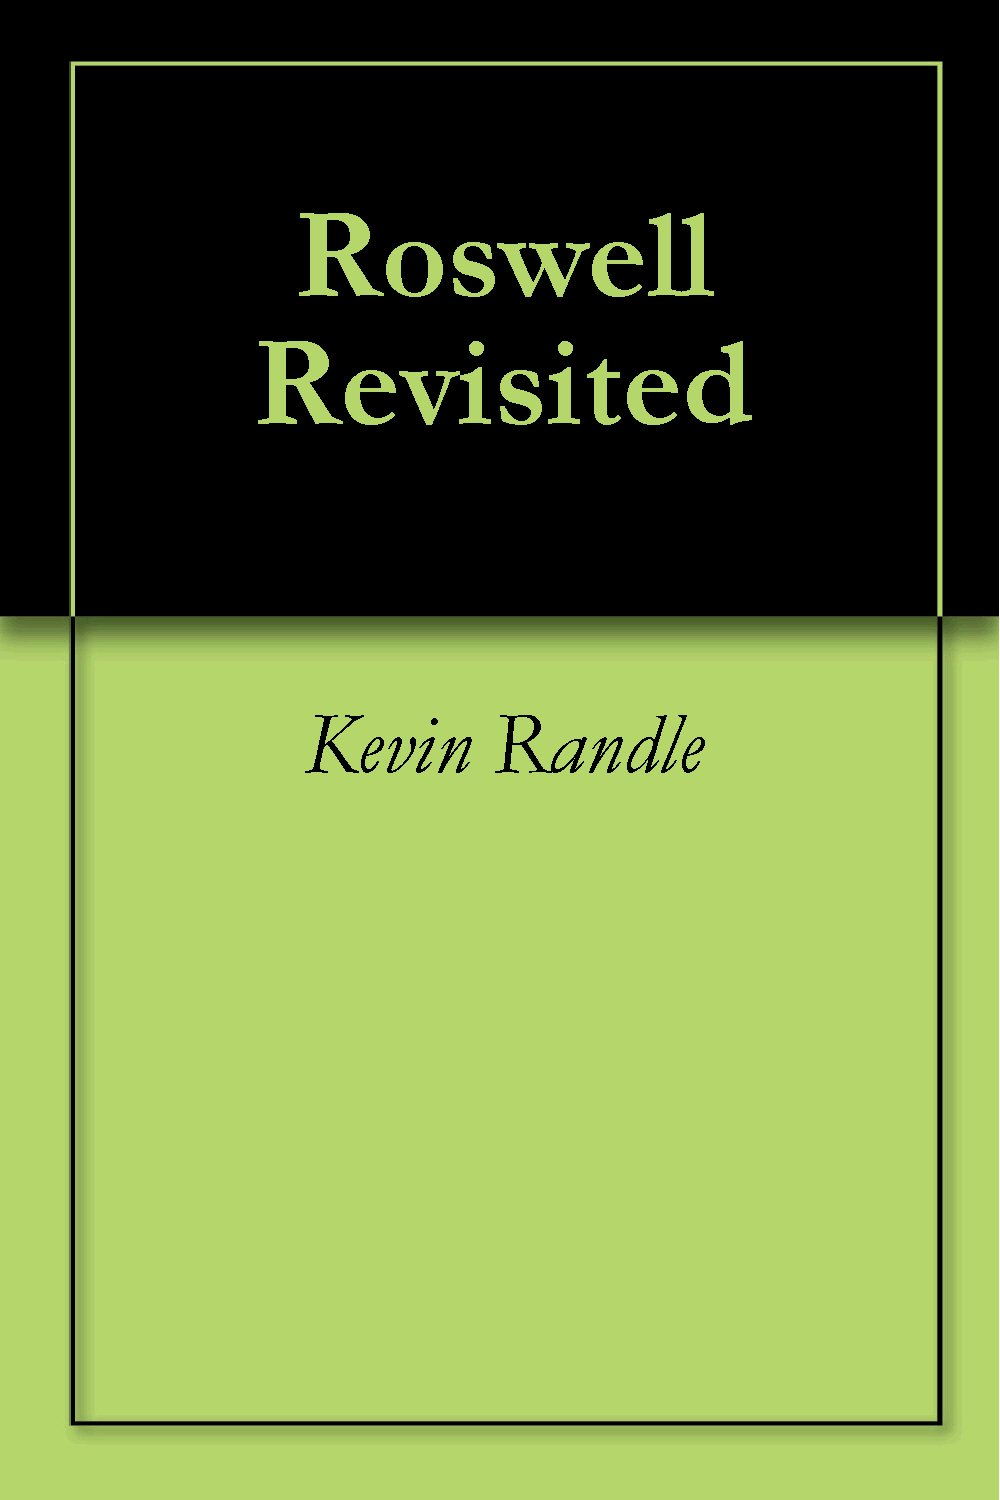 Kevin Randle | Researcher Revisits Roswell's UFO Crash - Powered by Inception Radio Network